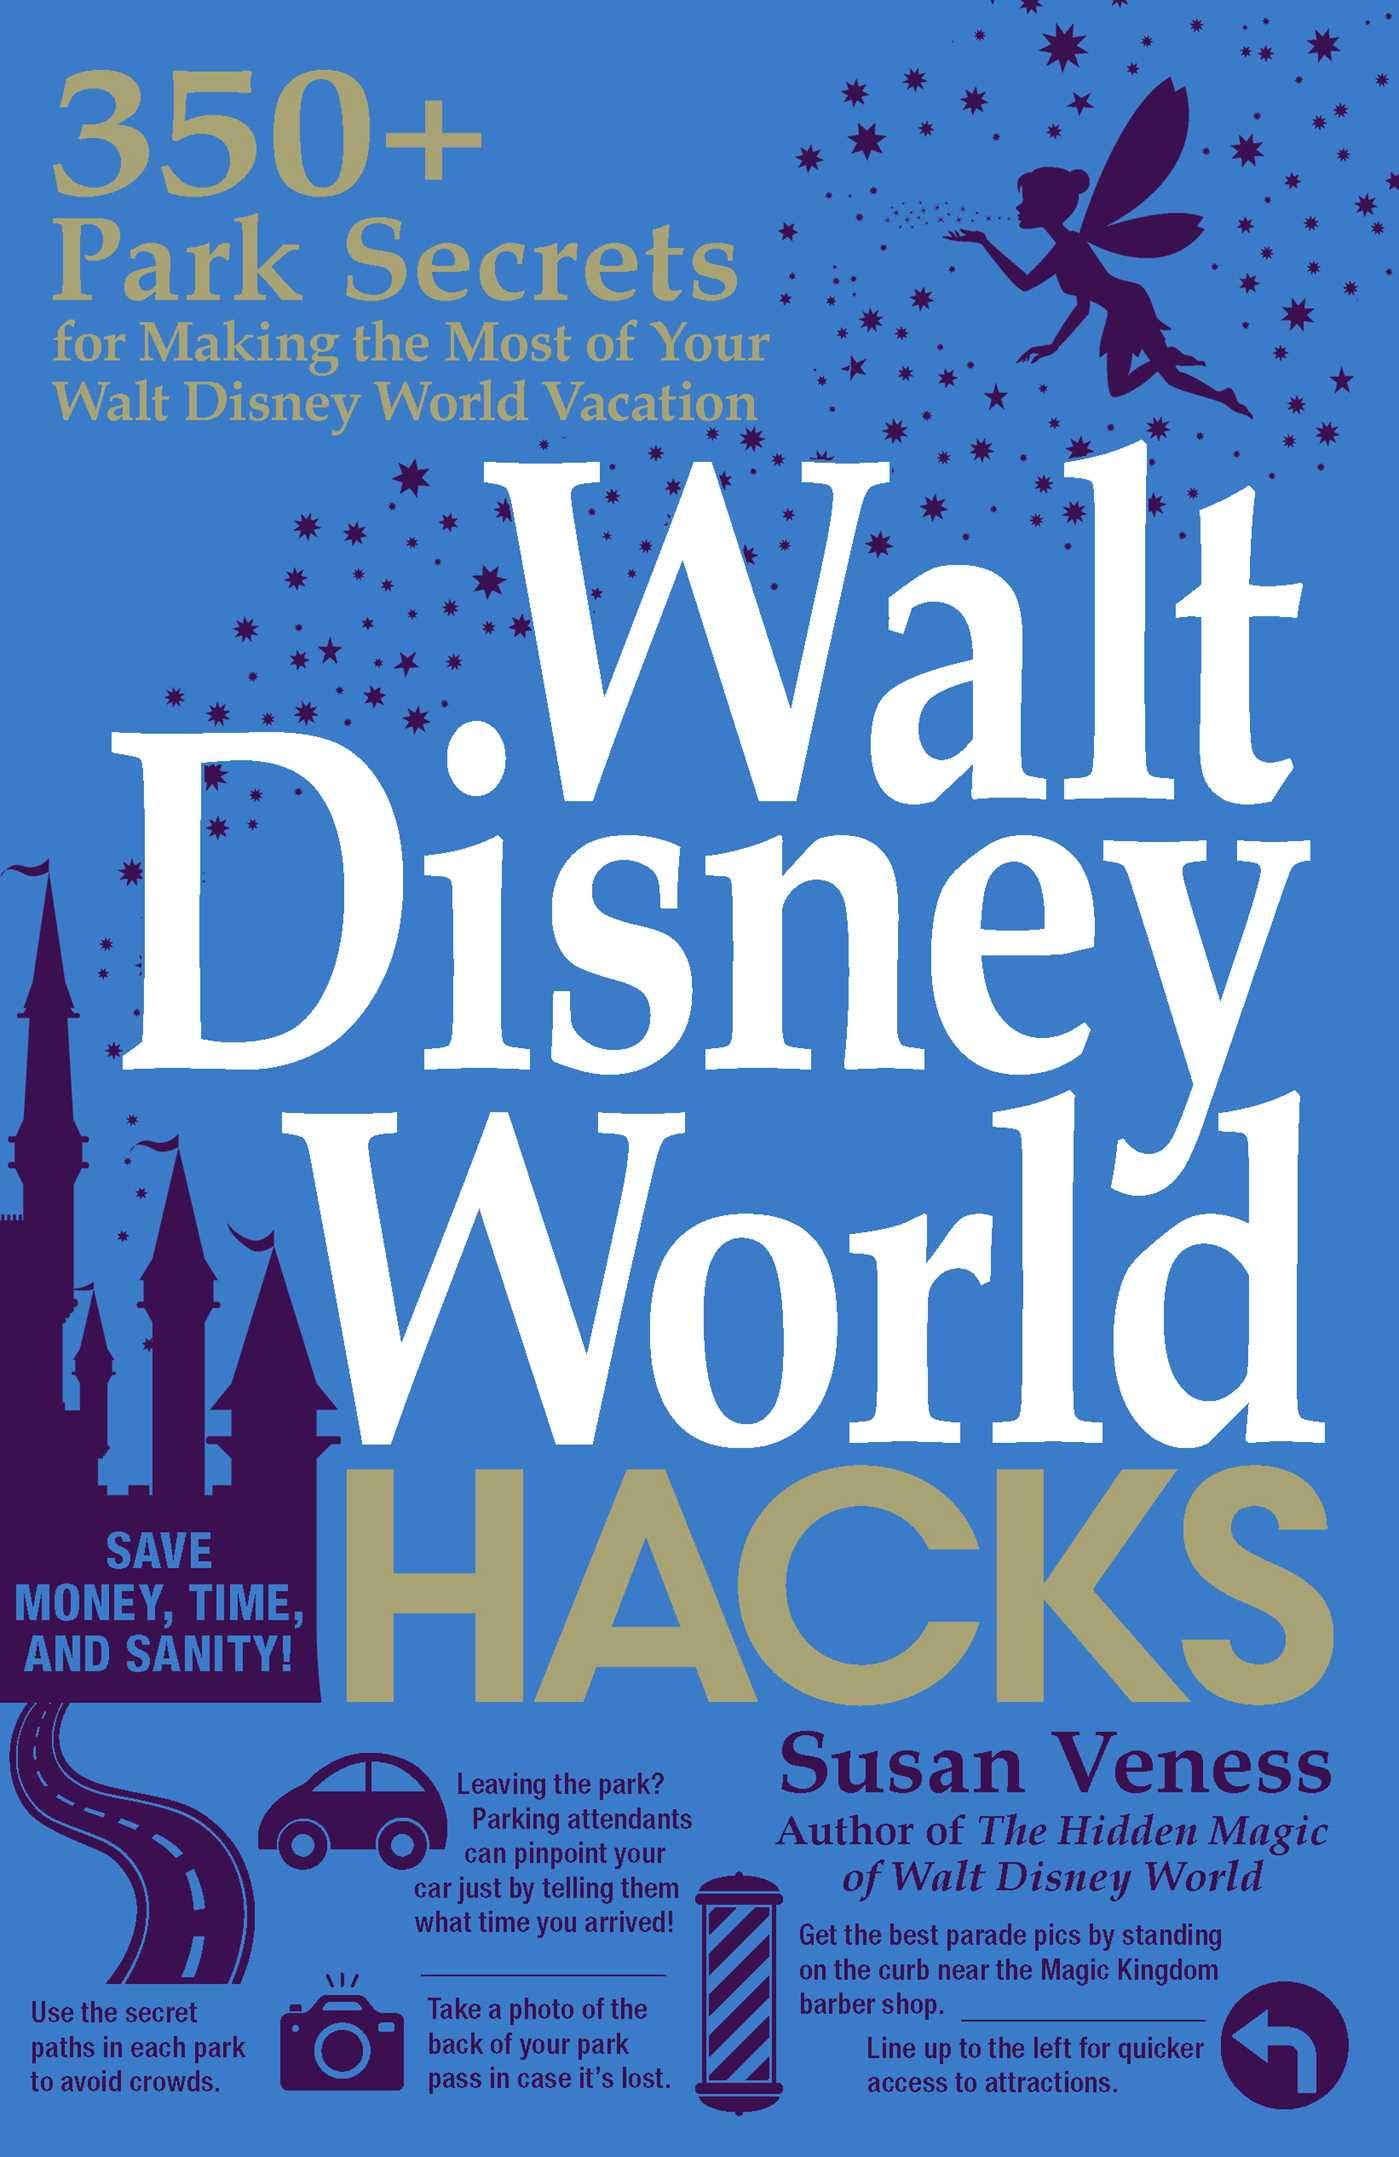 Image OfWalt Disney World Hacks: 350+ Park Secrets For Making The Most Of Your Walt Disney World Vacation (Hidden Magic)